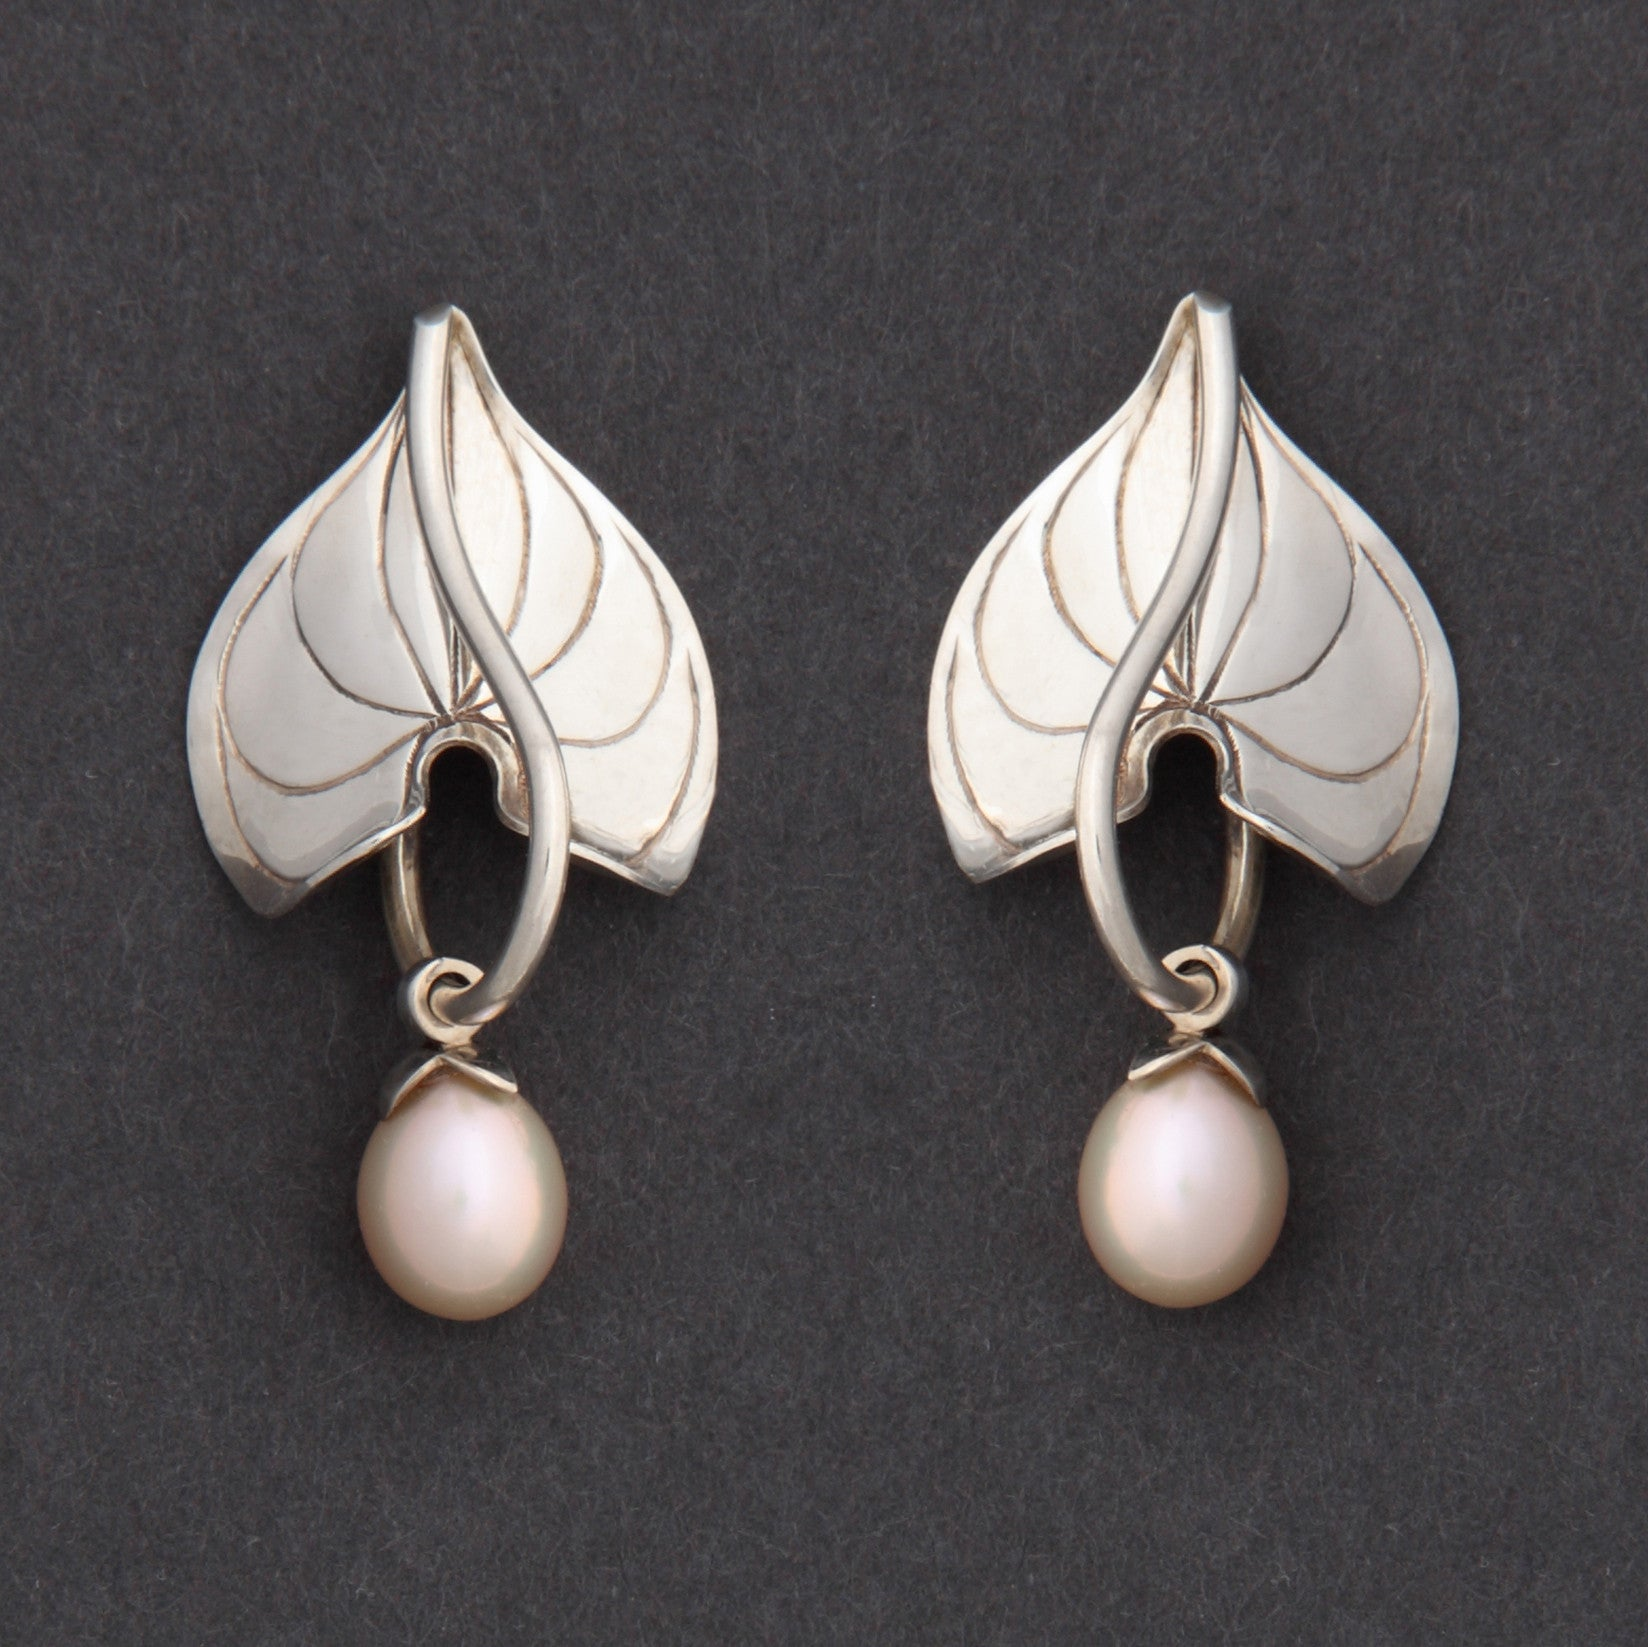 Sterling silver Morning Glory earrings with pearls